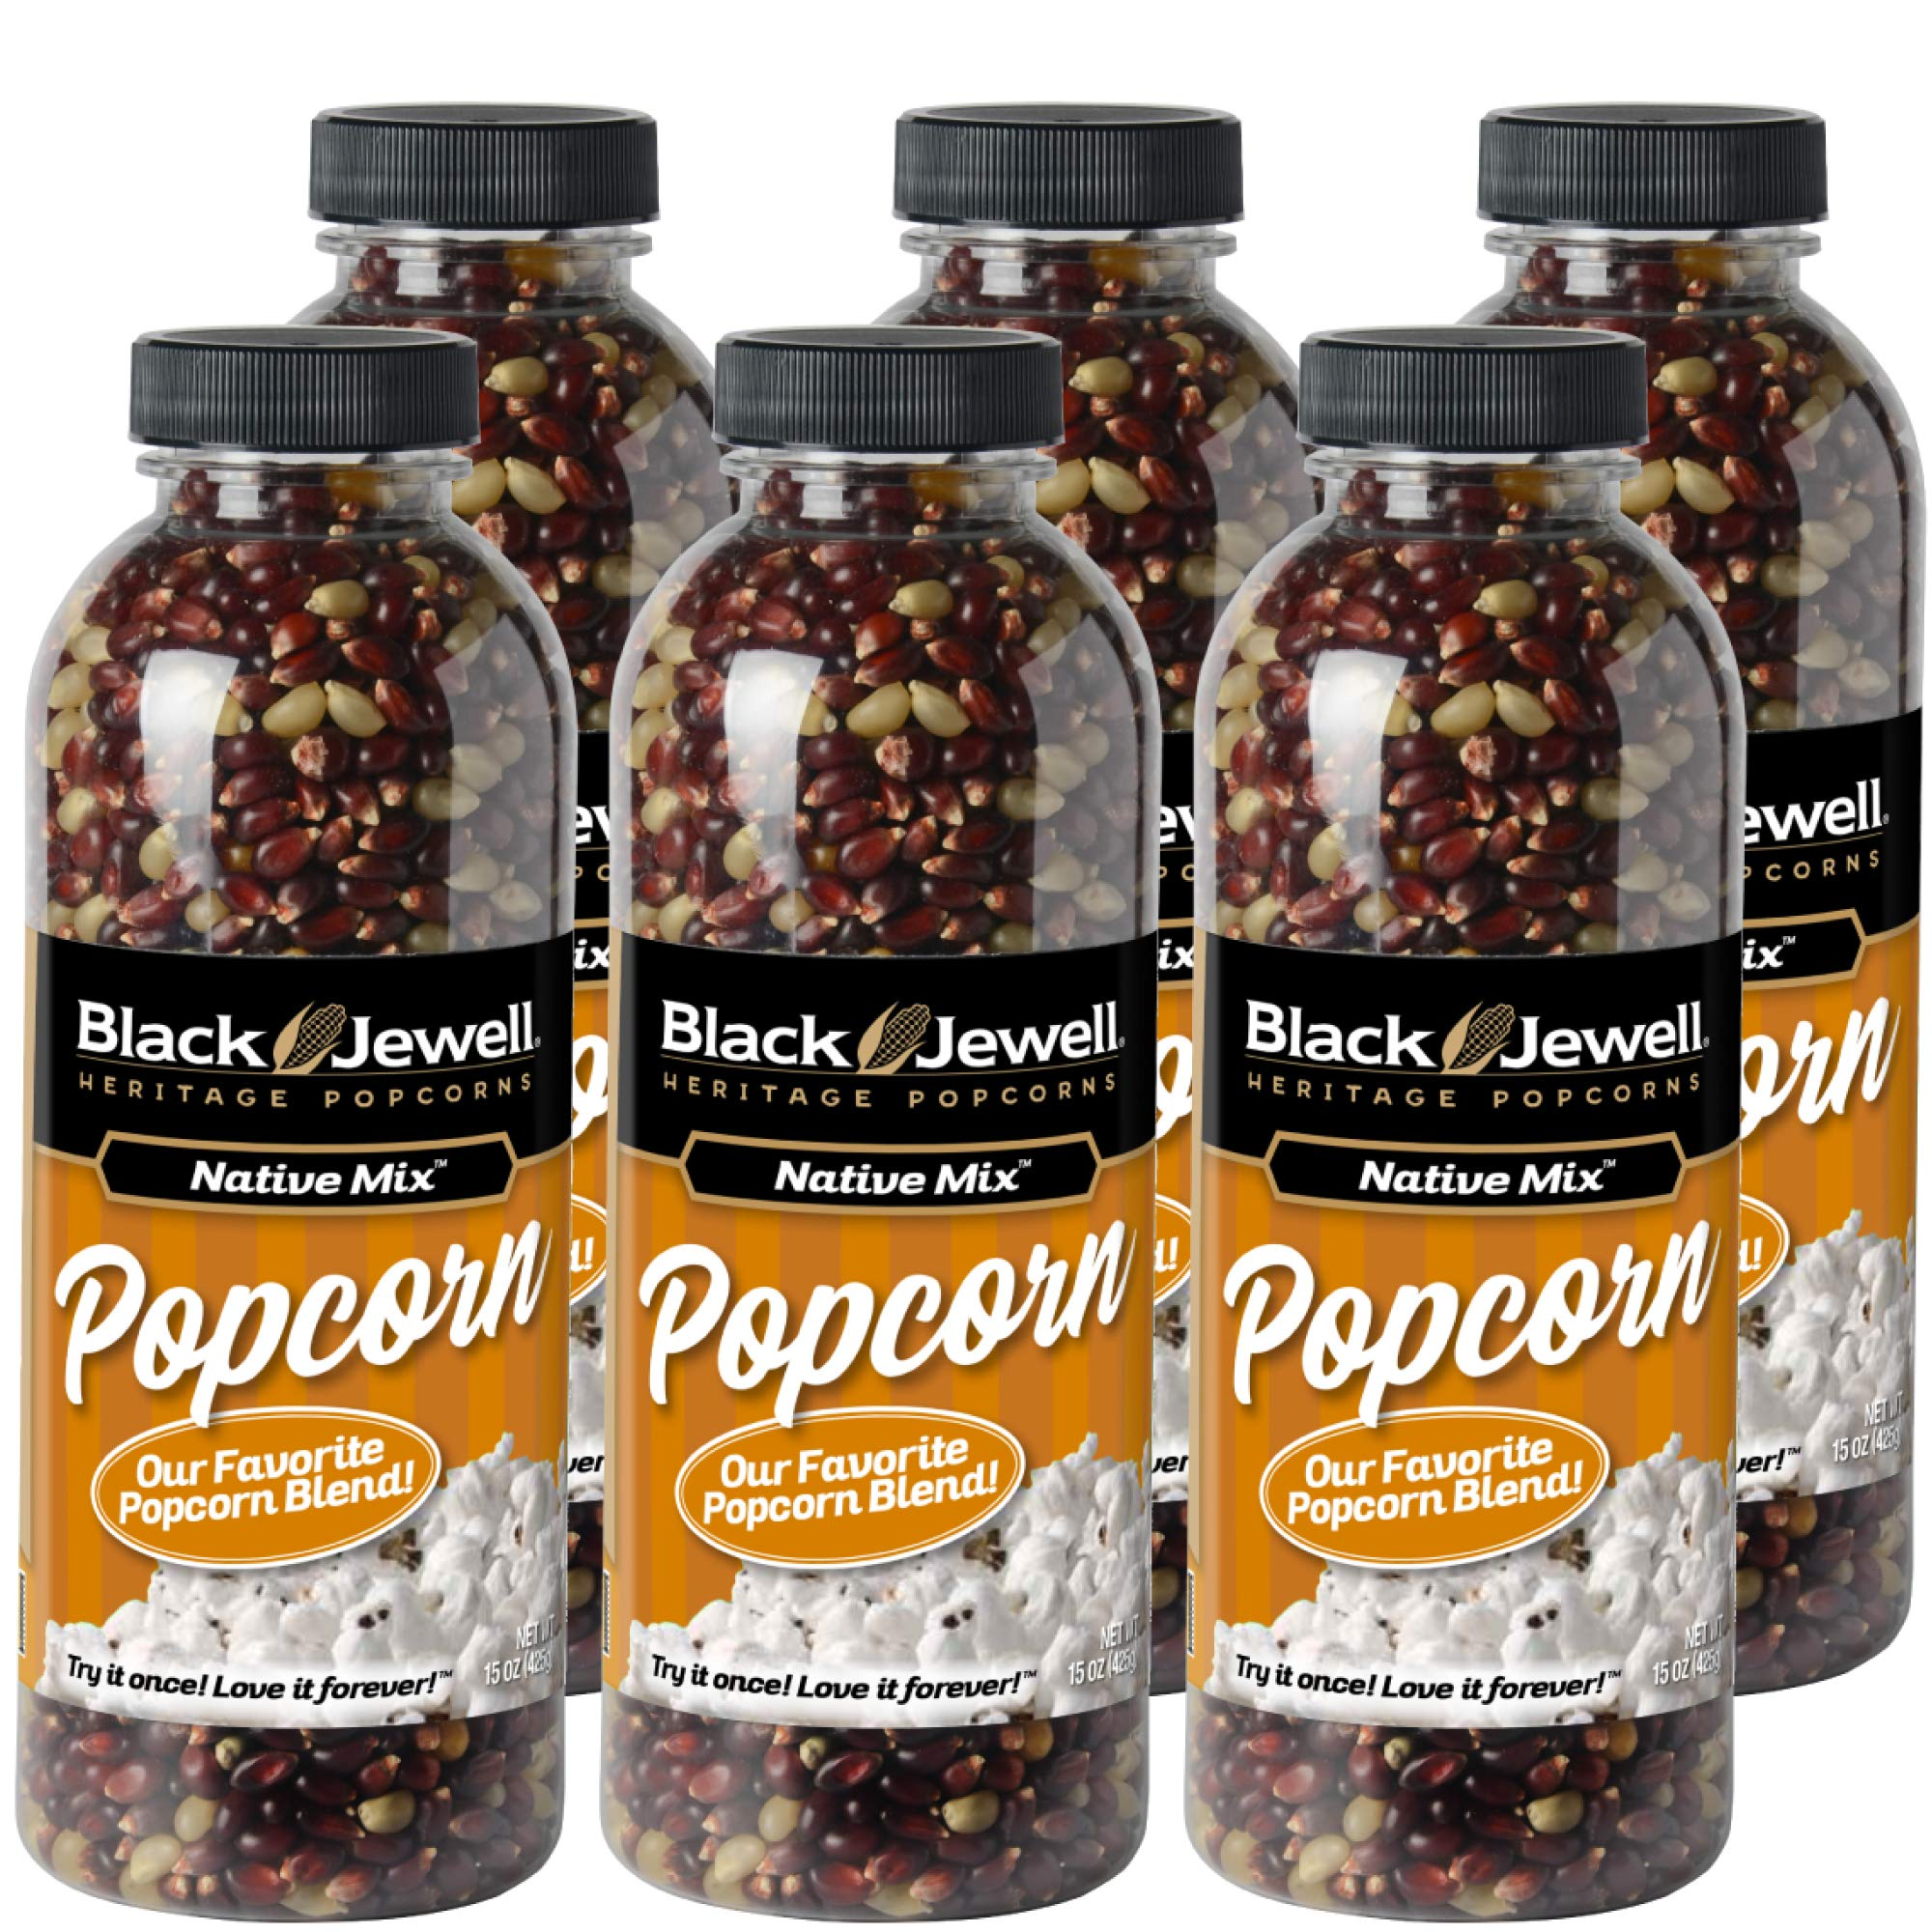 Black Jewell Native Mix Hulless Popcorn Kernels 15 Ounces (Pack of 6) by Black Jewell